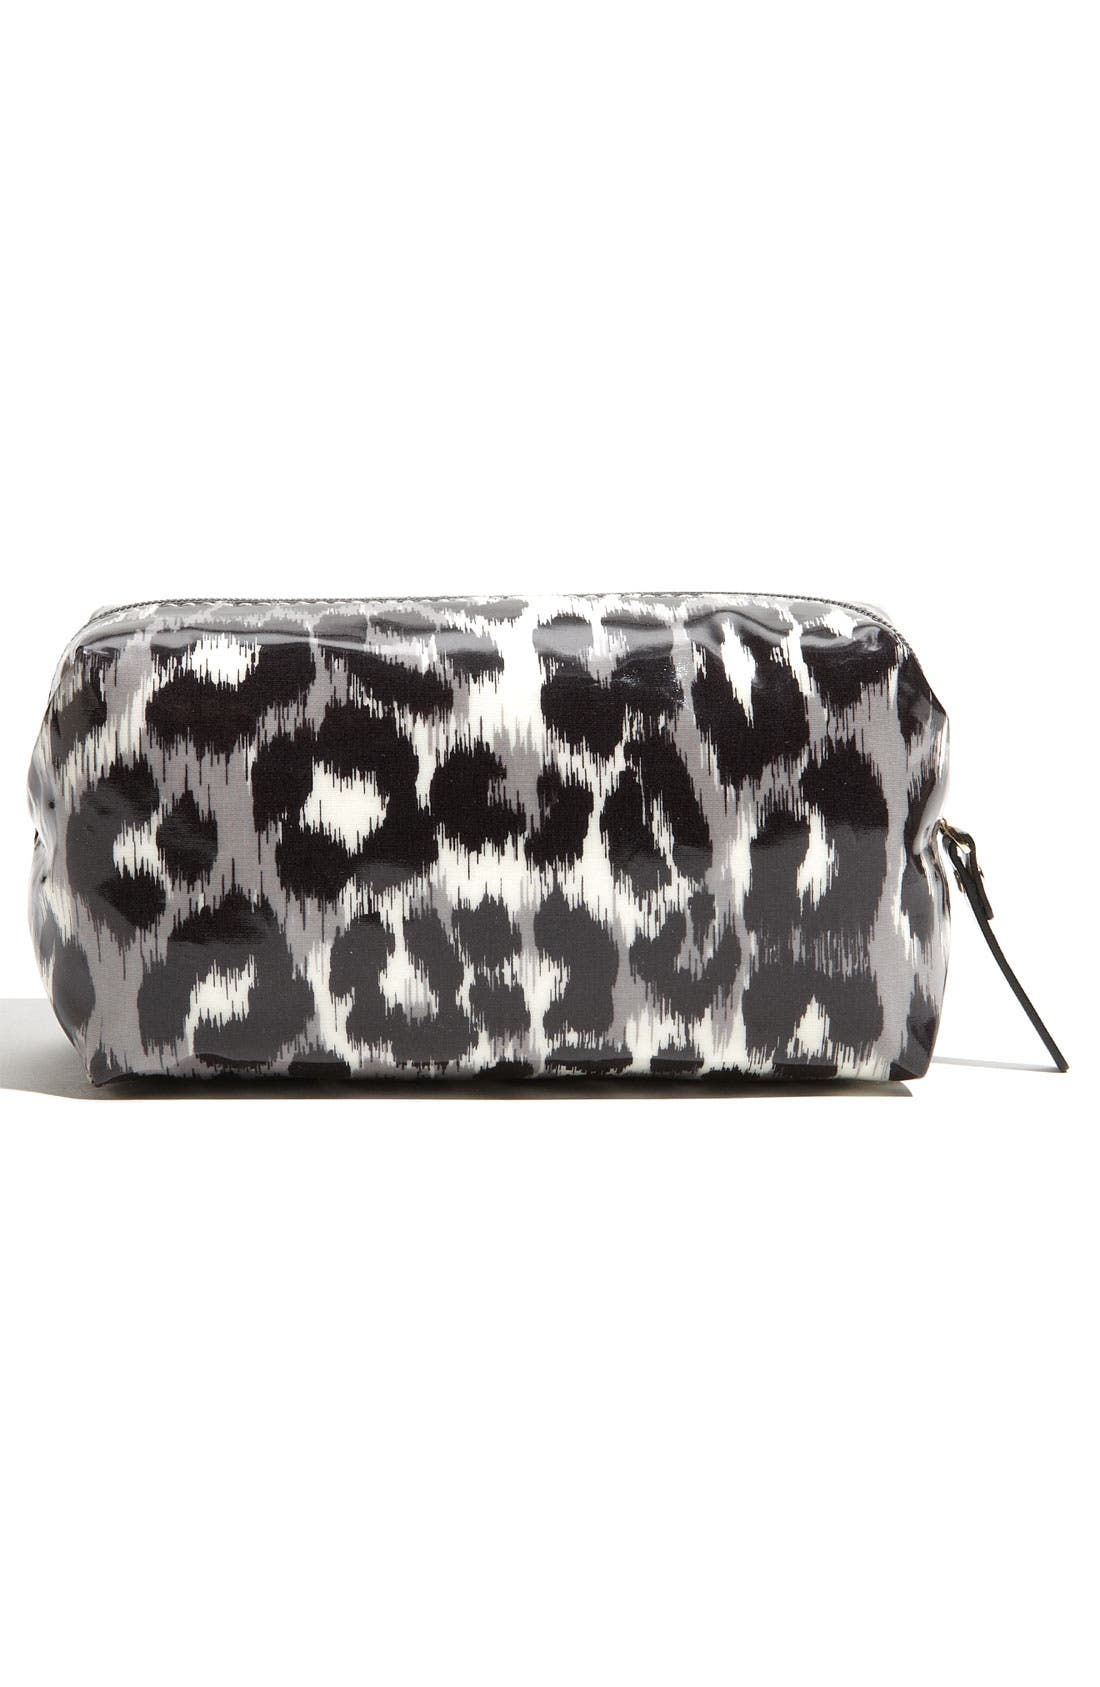 KATE SPADE NEW YORK,                             'daycation - leila' pouch,                             Alternate thumbnail 4, color,                             017